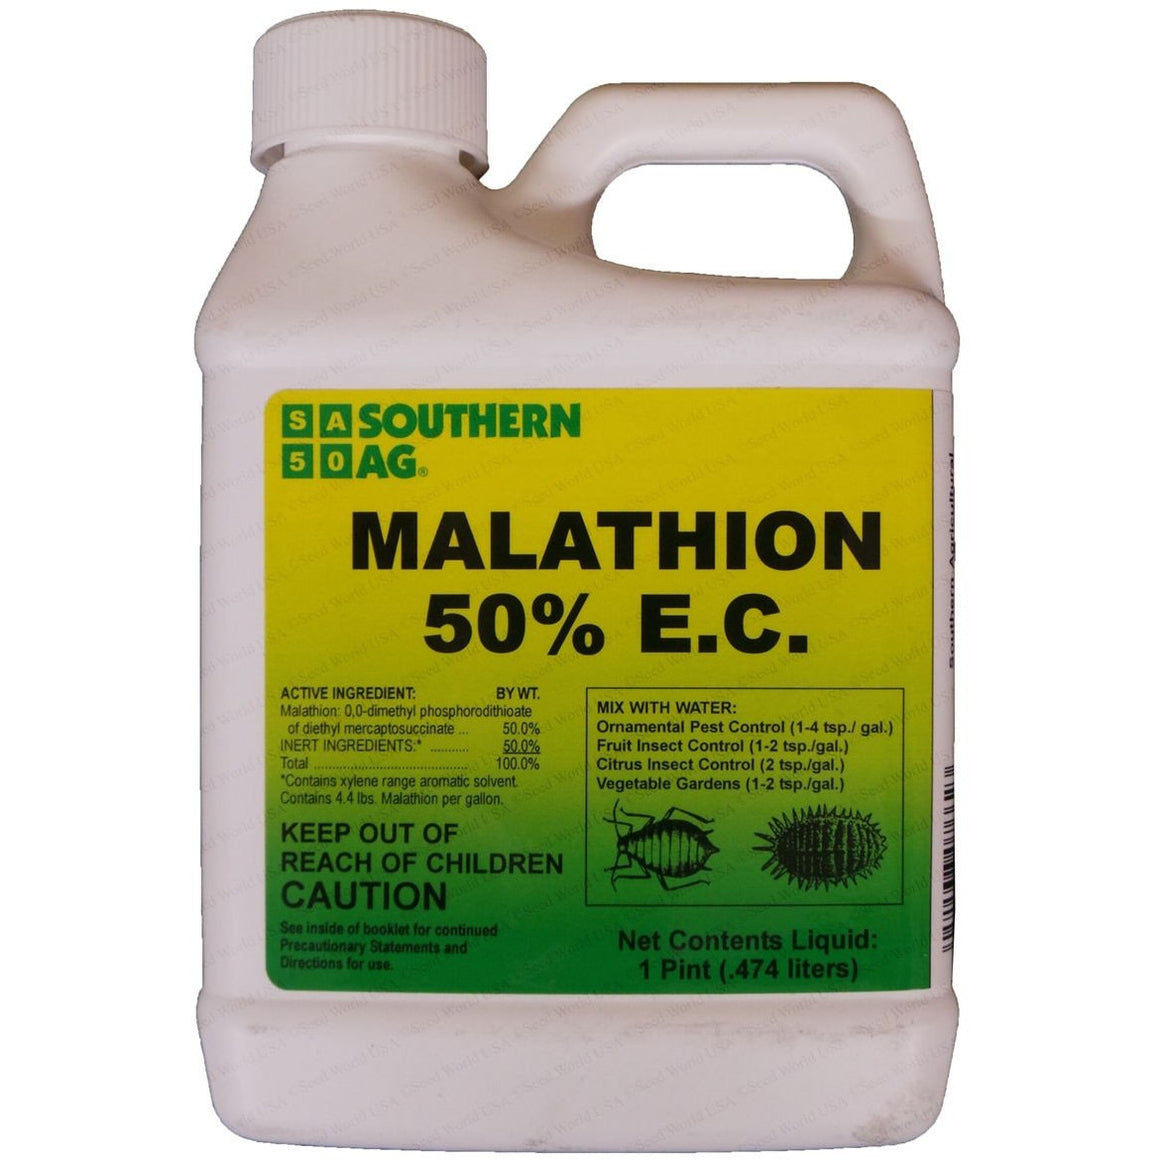 Malathion 50% EC - 1 Pint